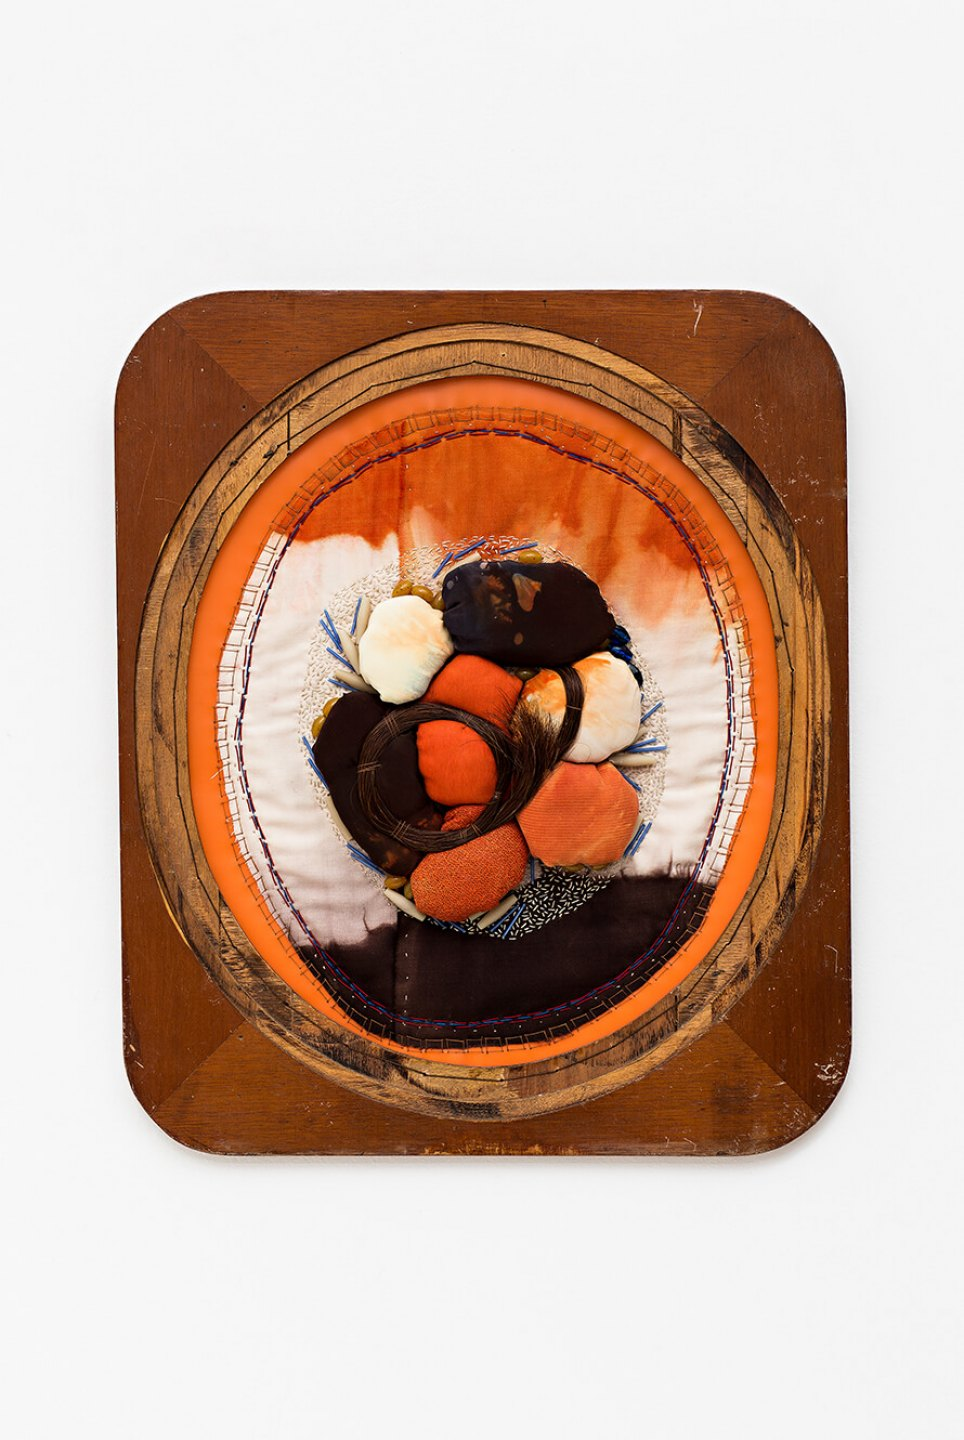 f.marquespeteado, <em>Broche, from Amabilem Conjugem Calcas (aqui jaz meu Bem Amado) series,</em> 2012, wood framed textile collage that includes different beads, horsehair and dyed silks, embroidered on a PVC, 68 × 57,5 cm - Mendes Wood DM